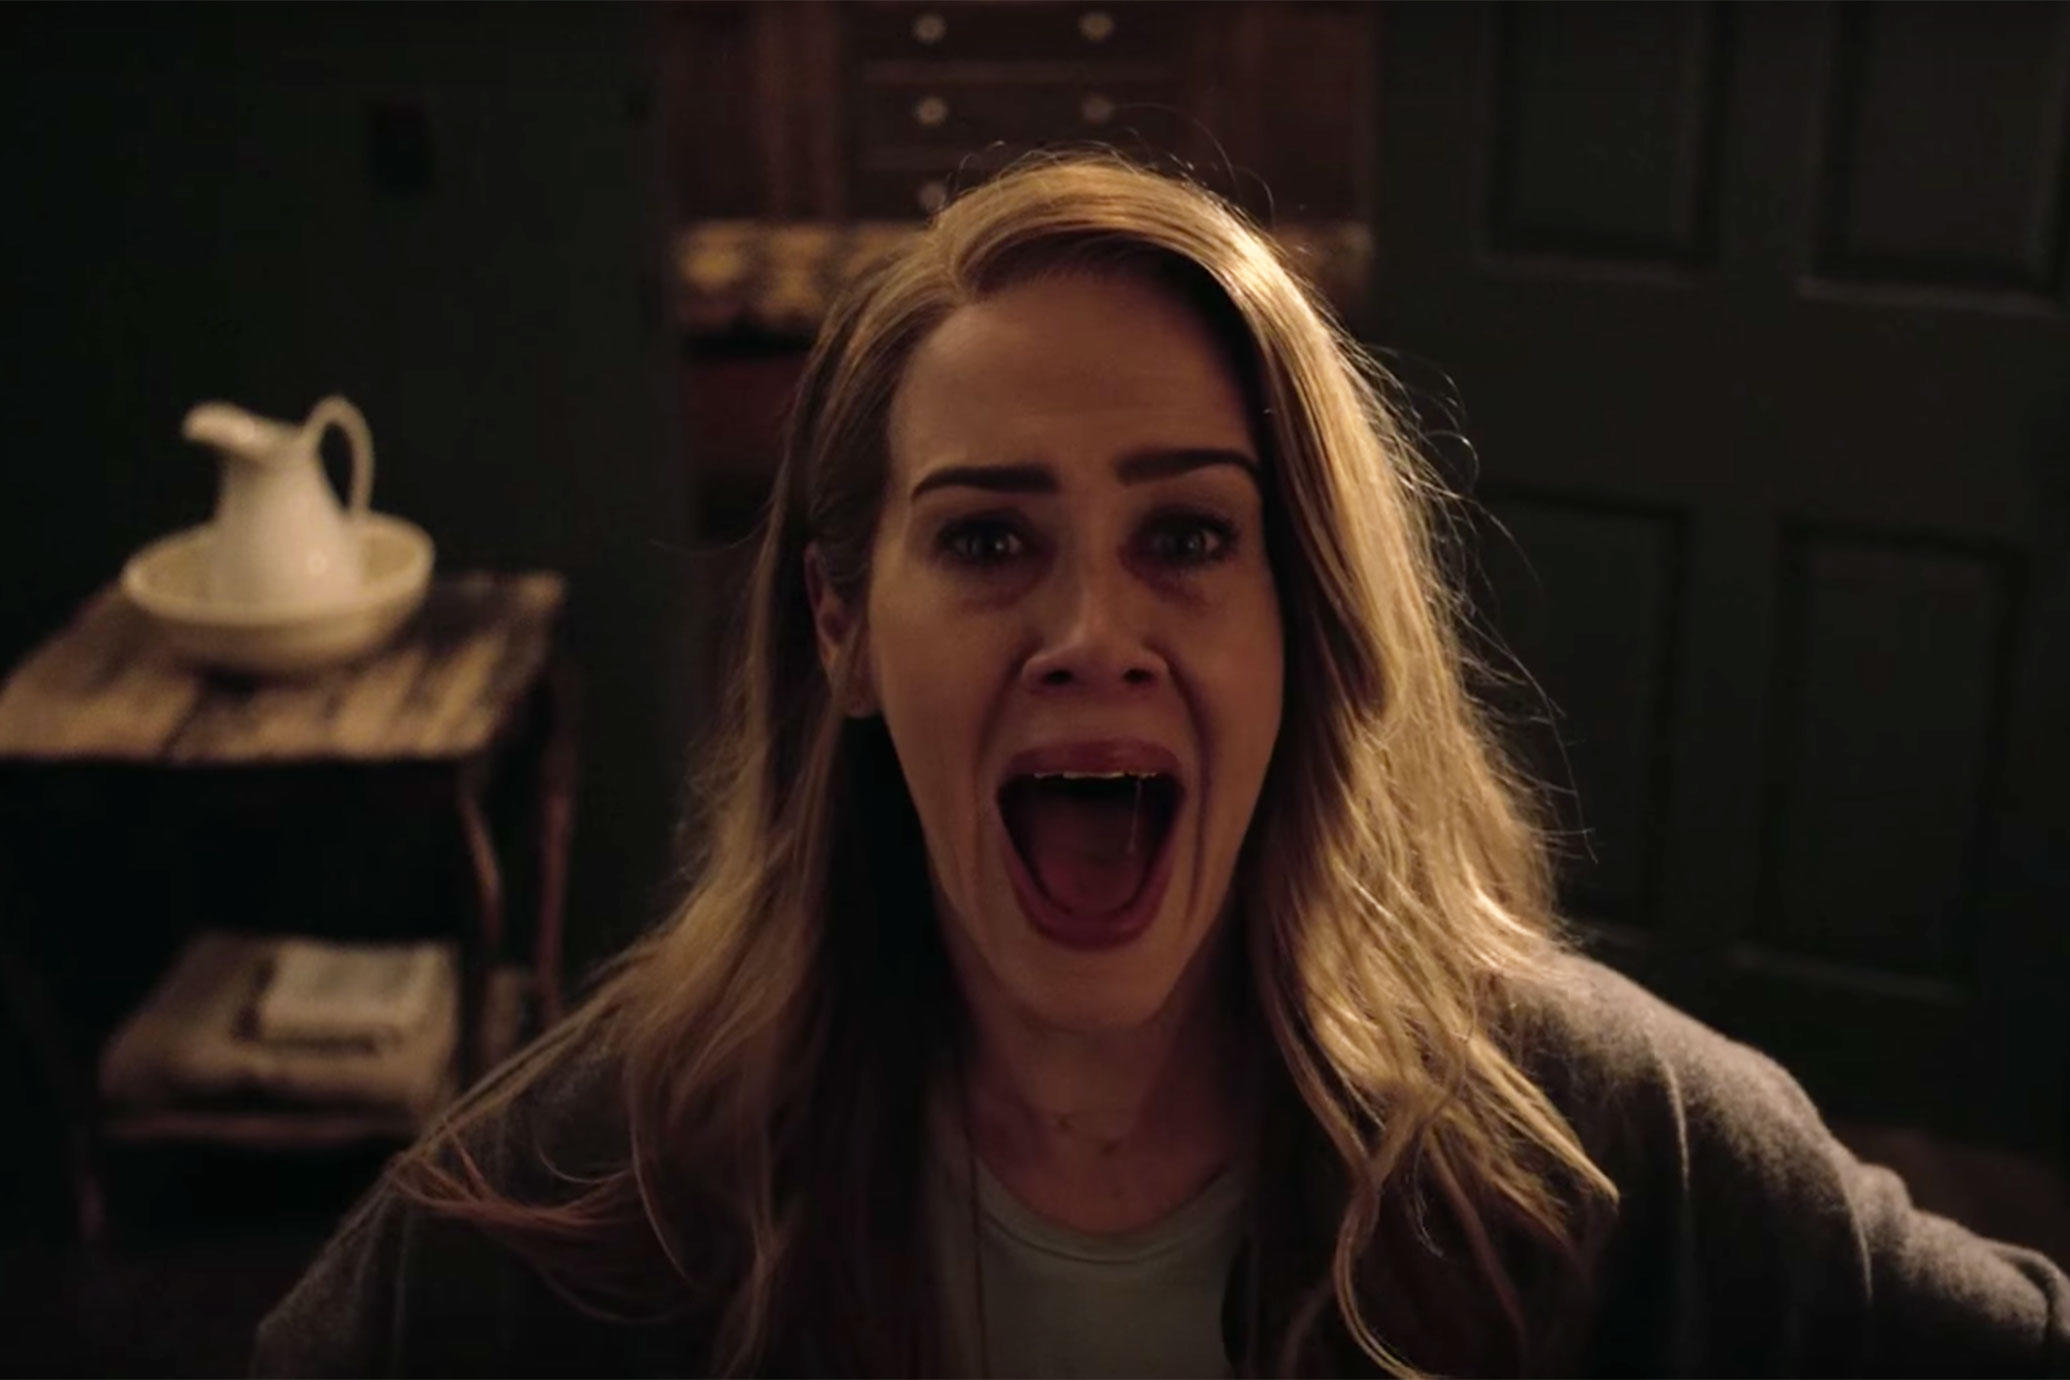 """We've already got some theories as to what the theme of """"American Horror Story"""" Season 7 might be"""